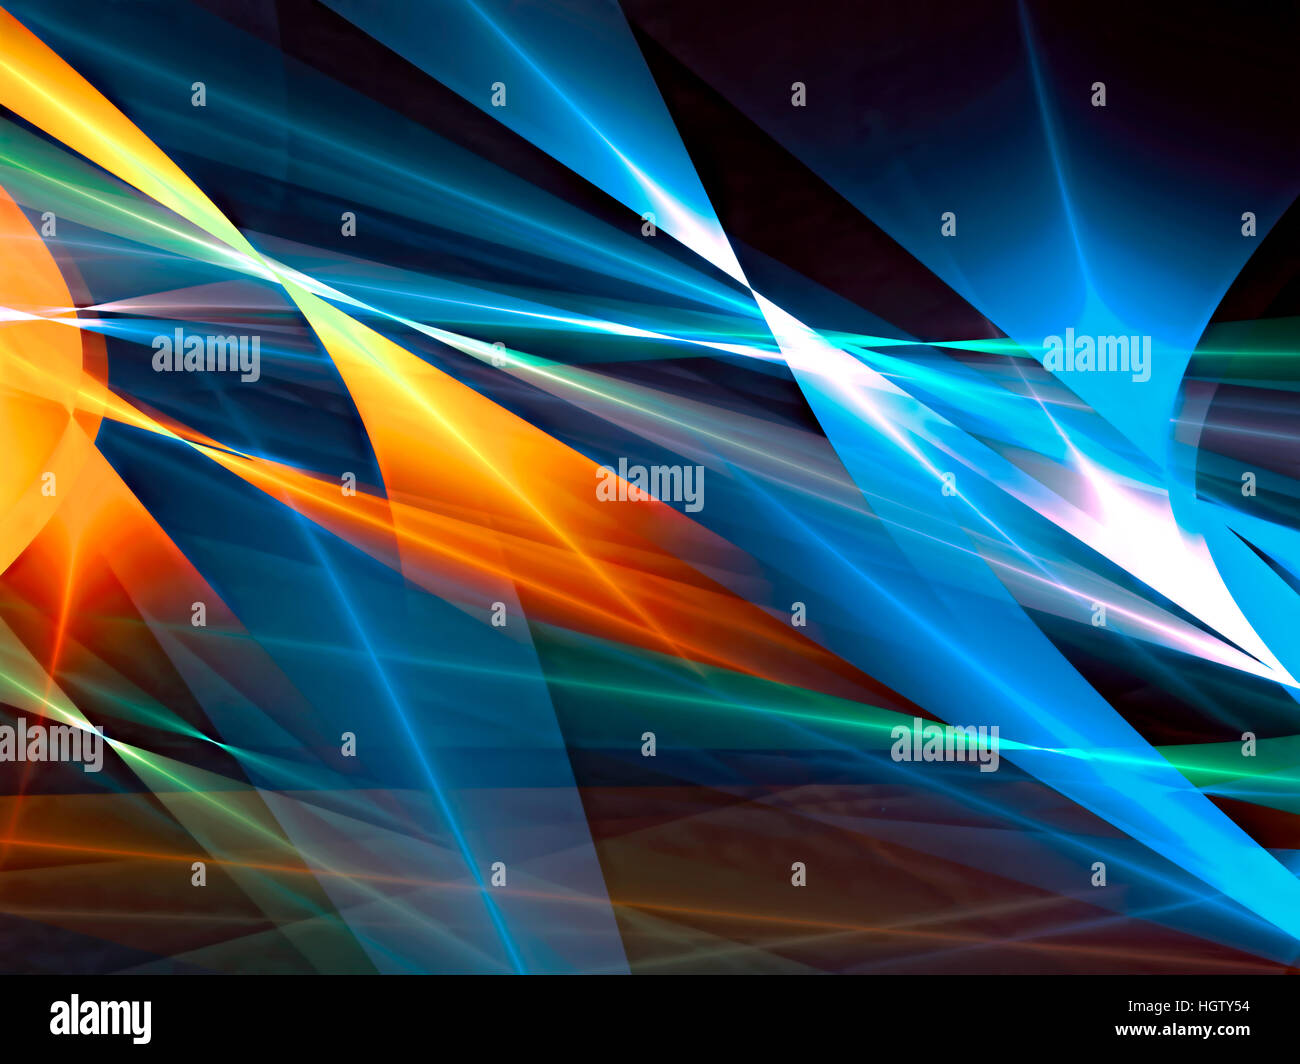 Colourful abstract background - digitally generated image - Stock Image